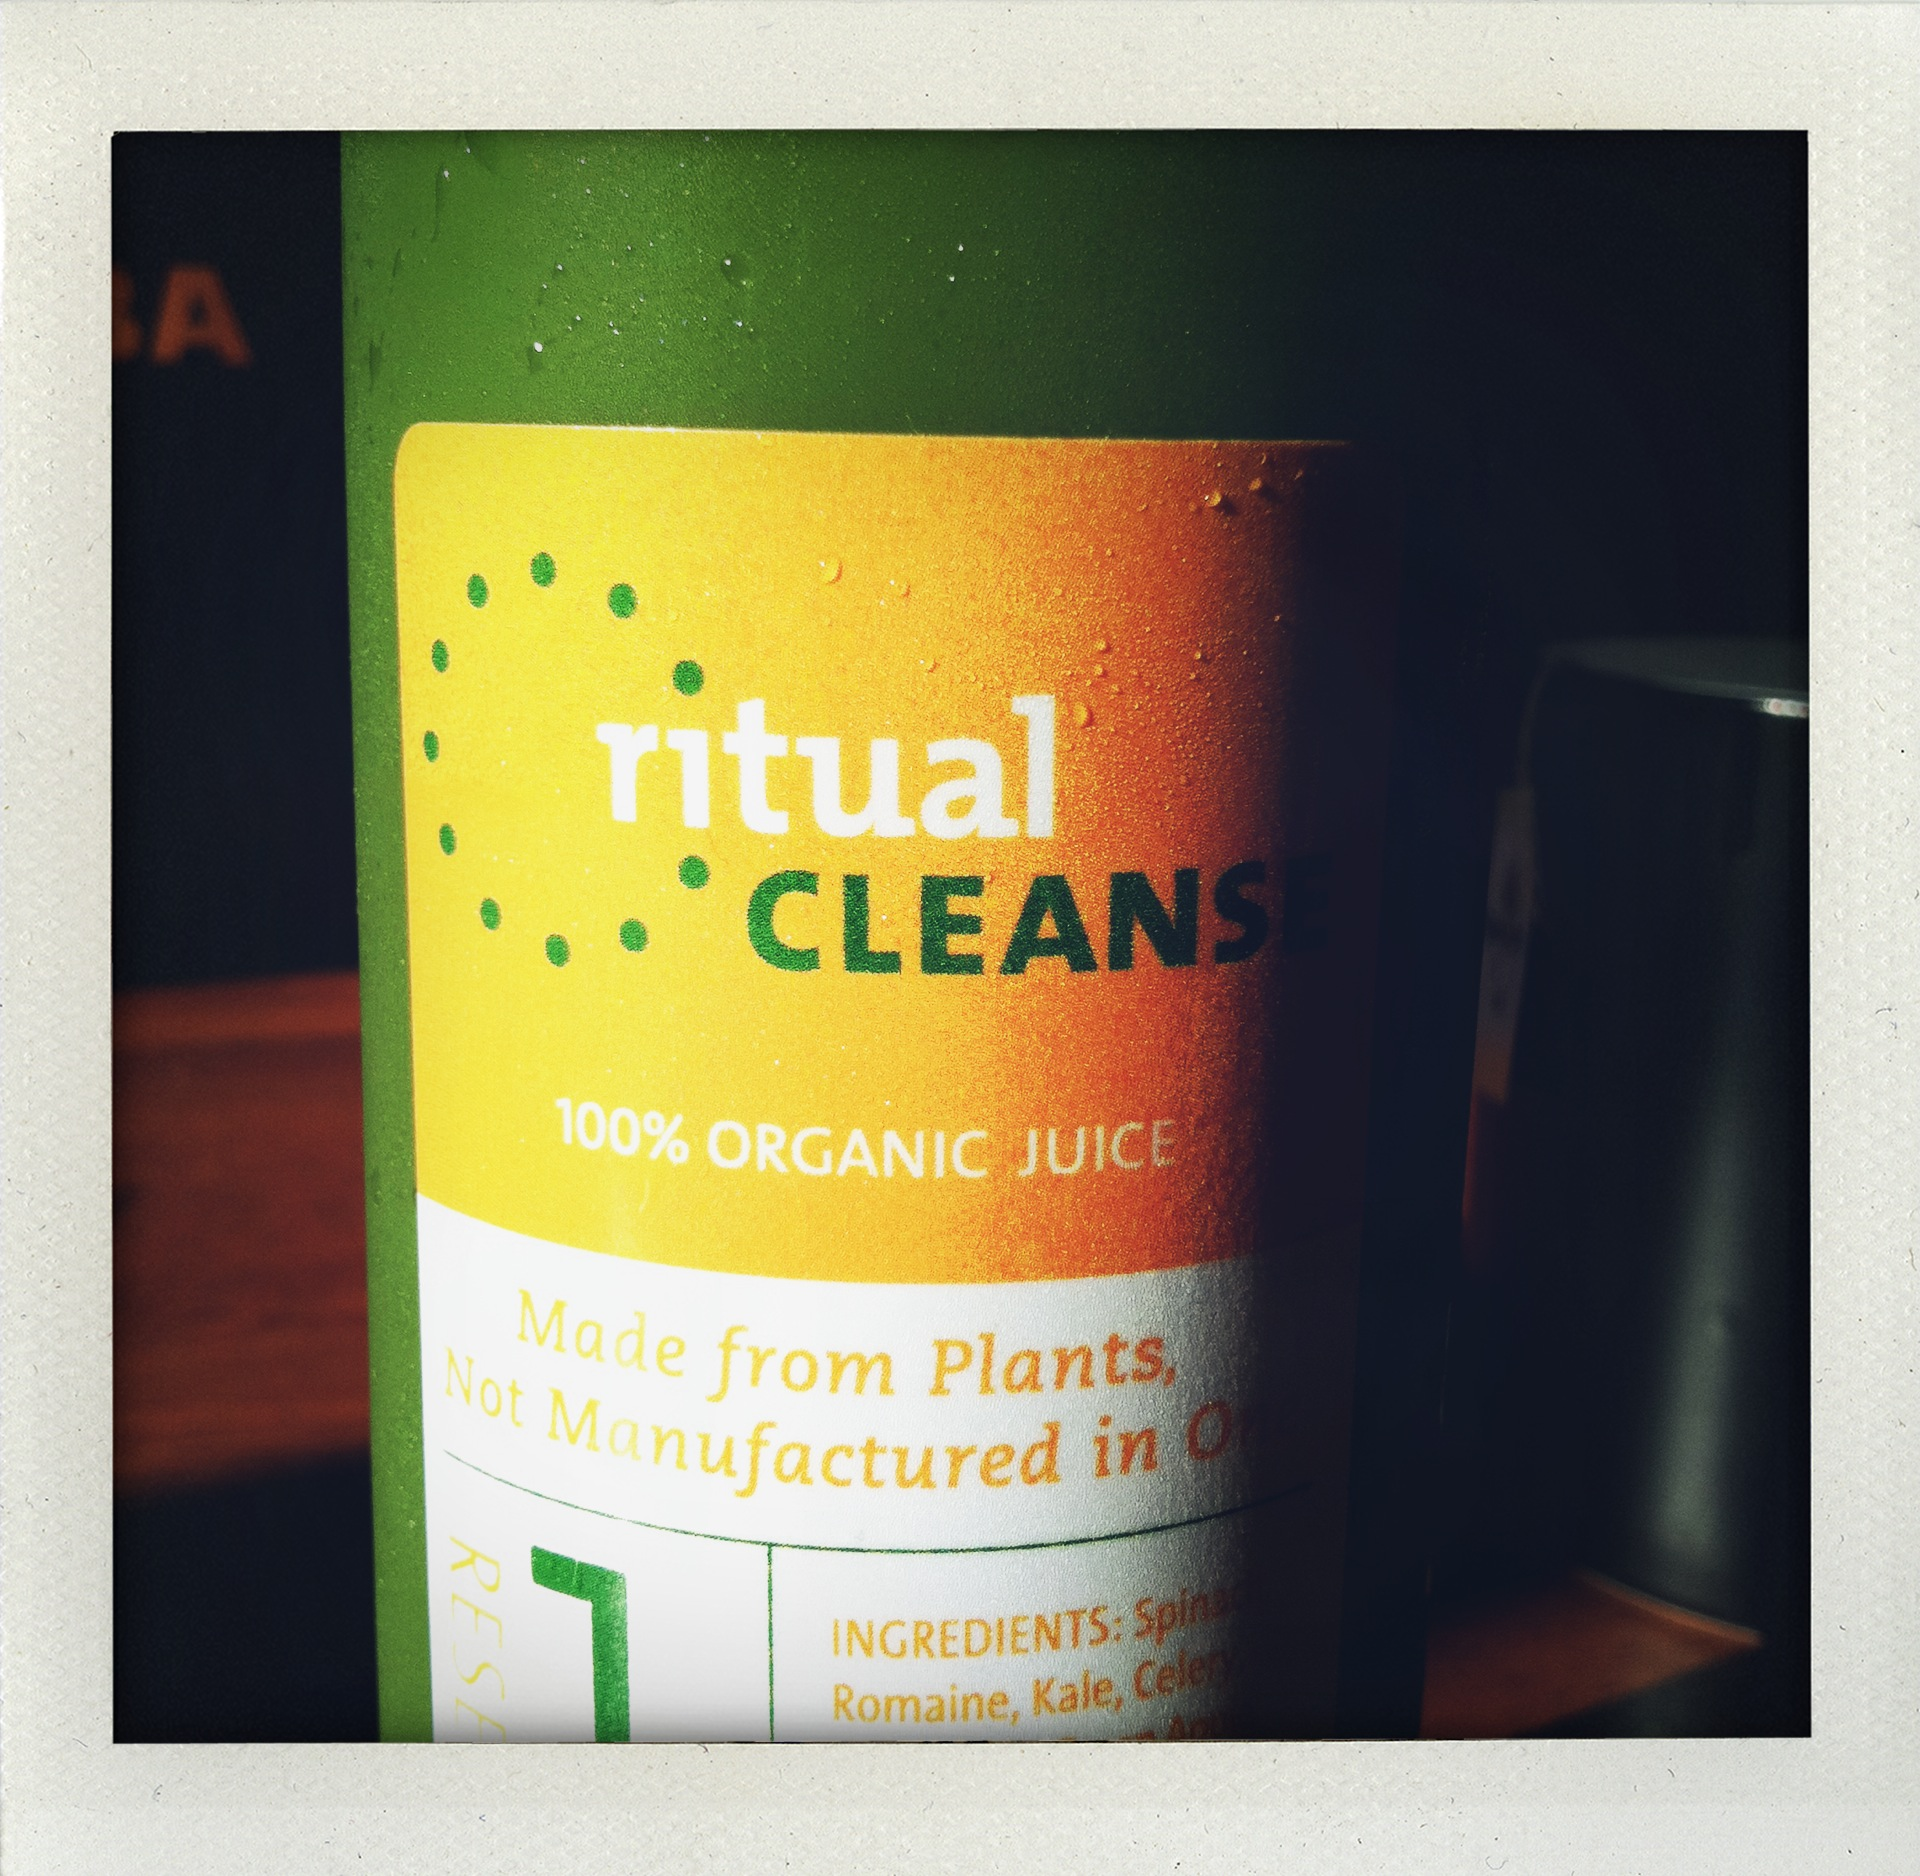 My First Juice Fast – Ritual Cleanse Coupon Code